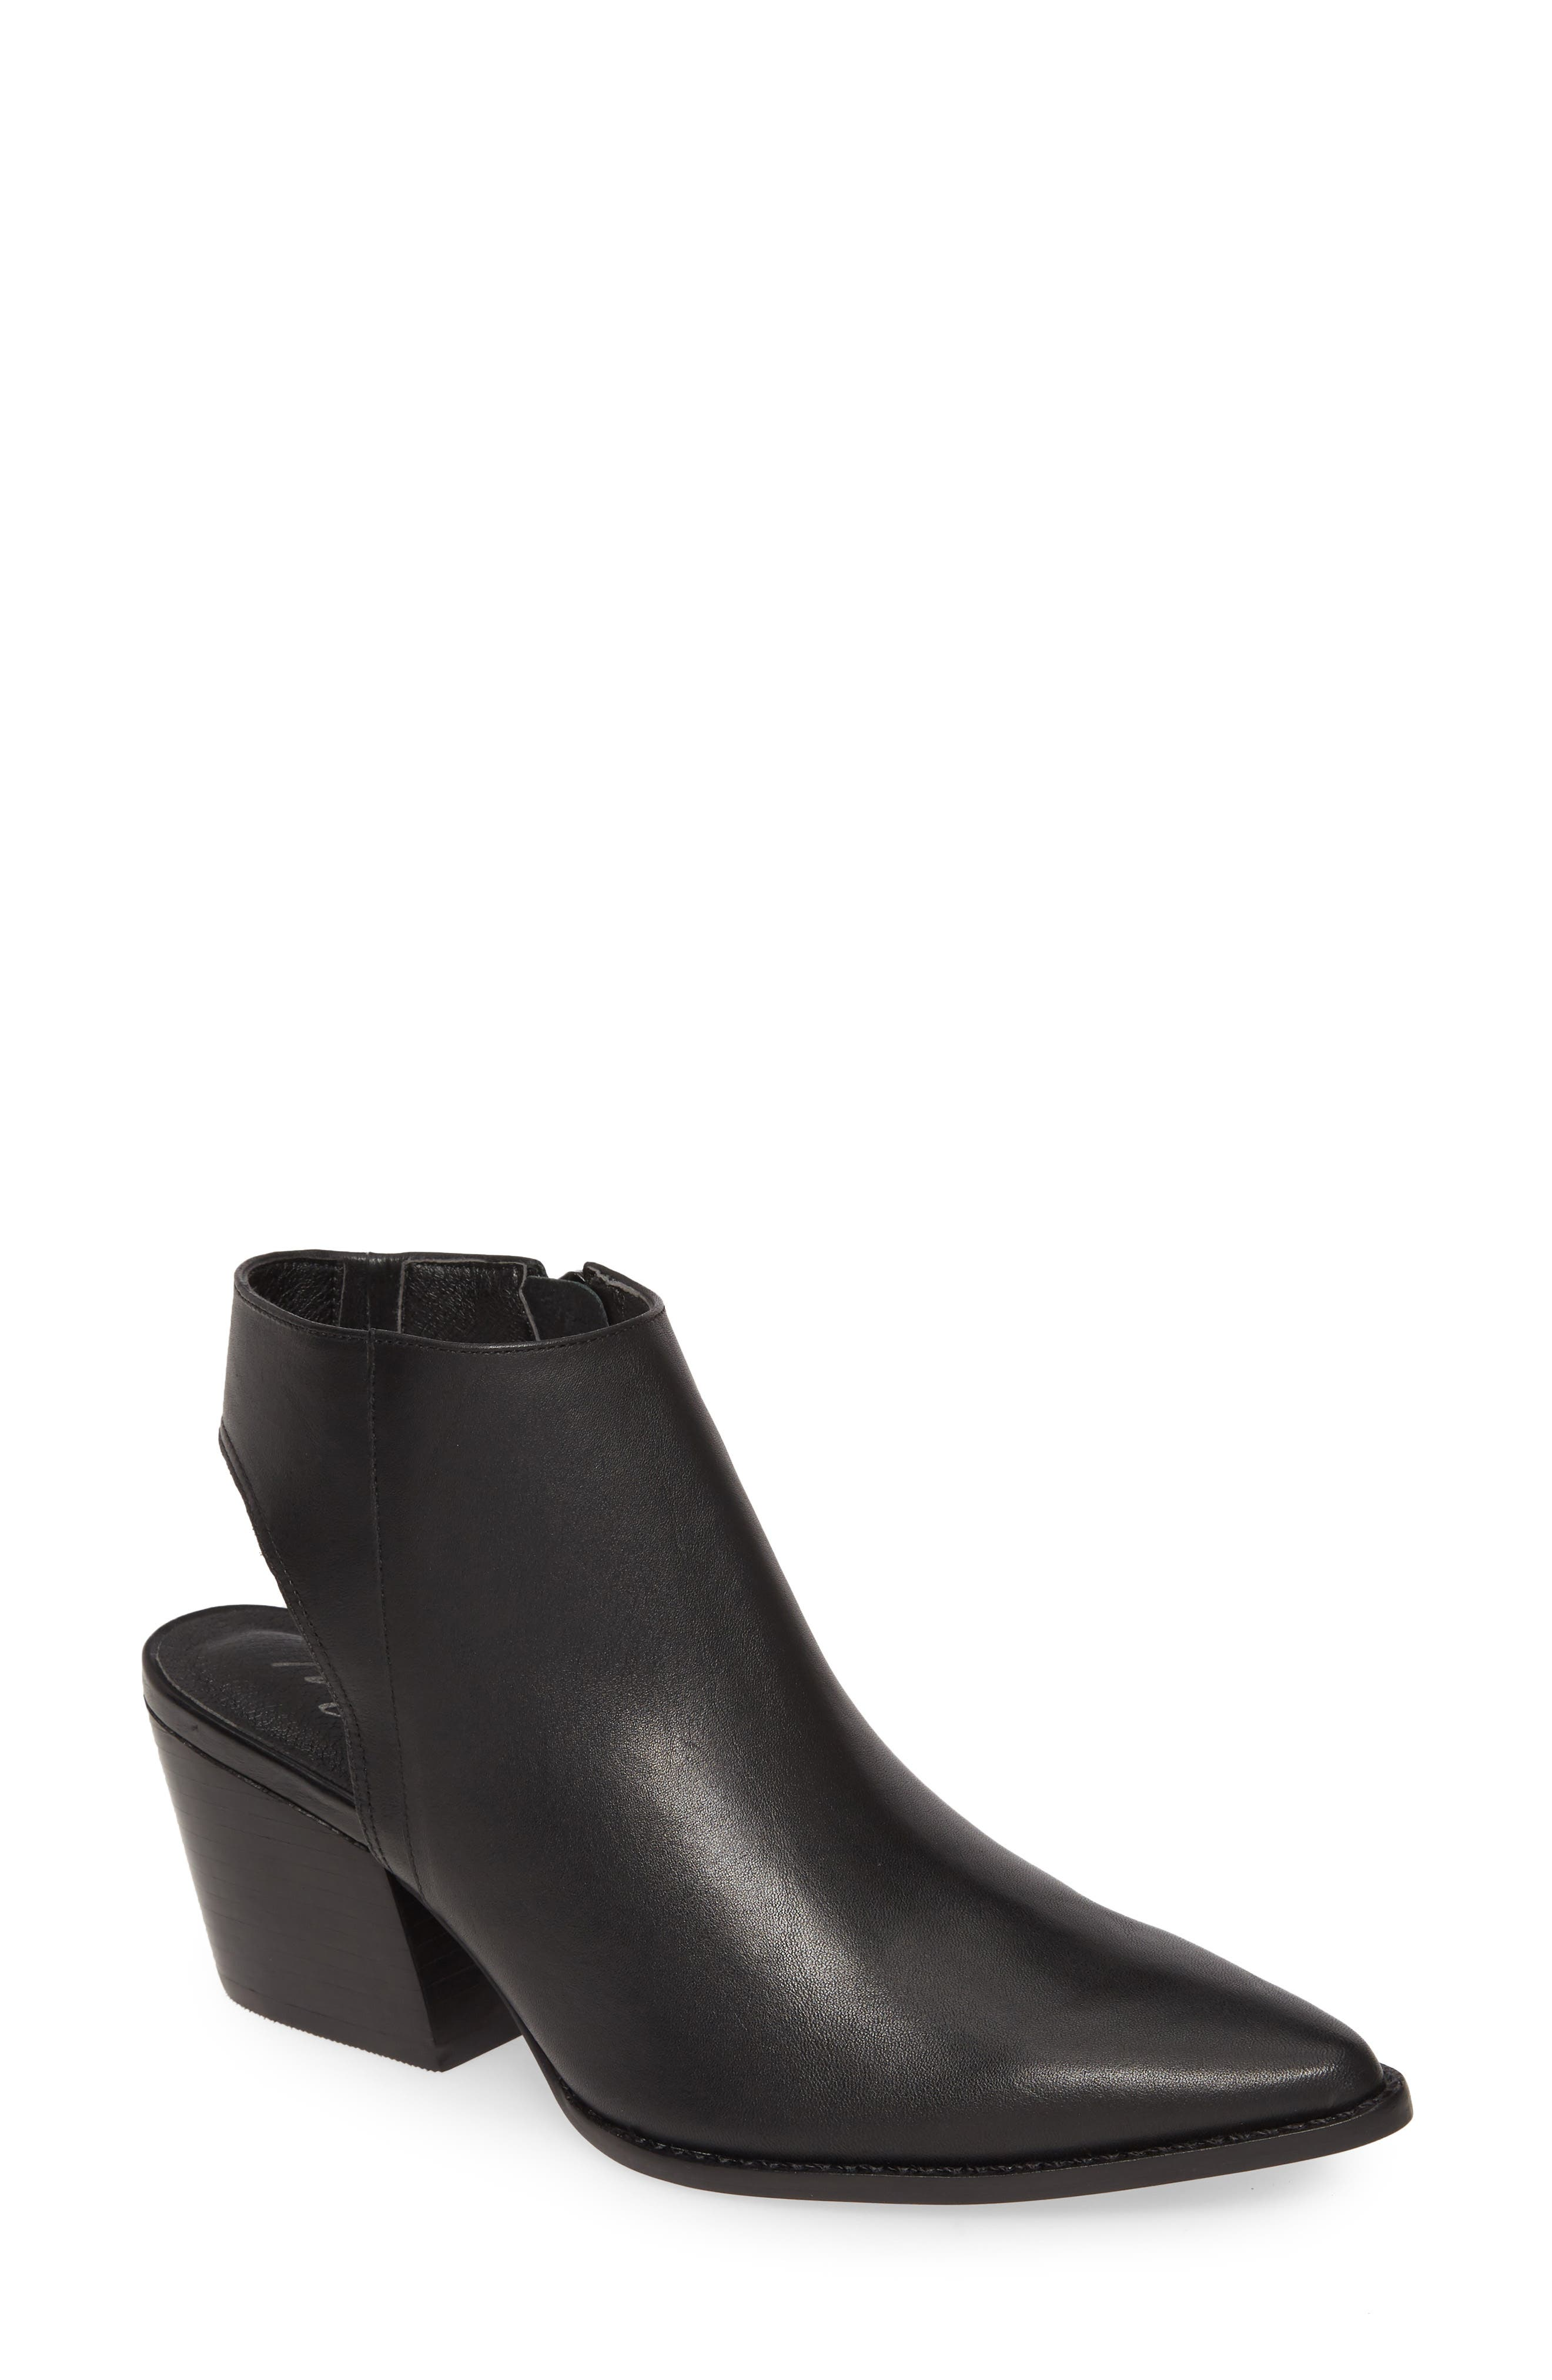 Matisse Odie Cutout Pointed Toe Boot, Black